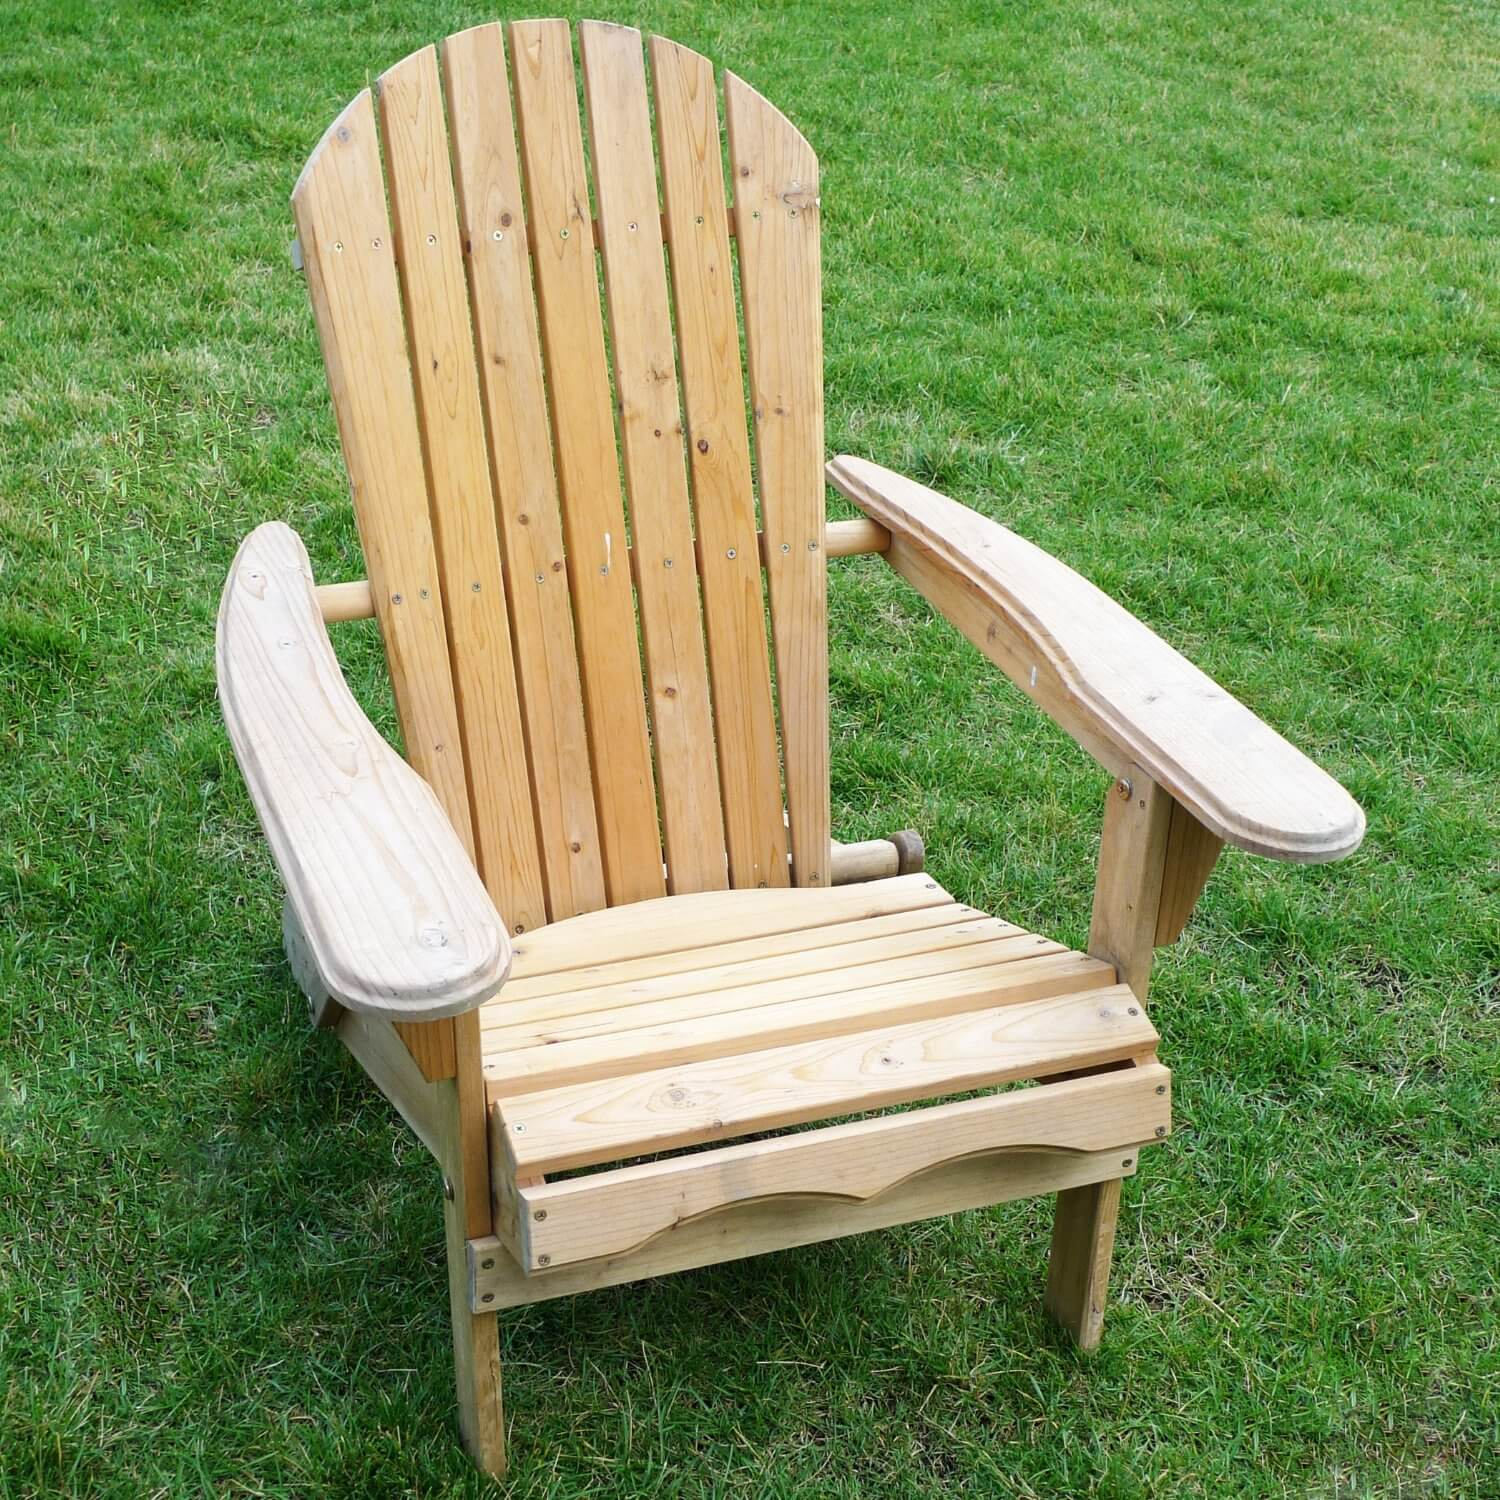 plans adirondack chairs free used lift for sale how to build a wooden pallet chair step by